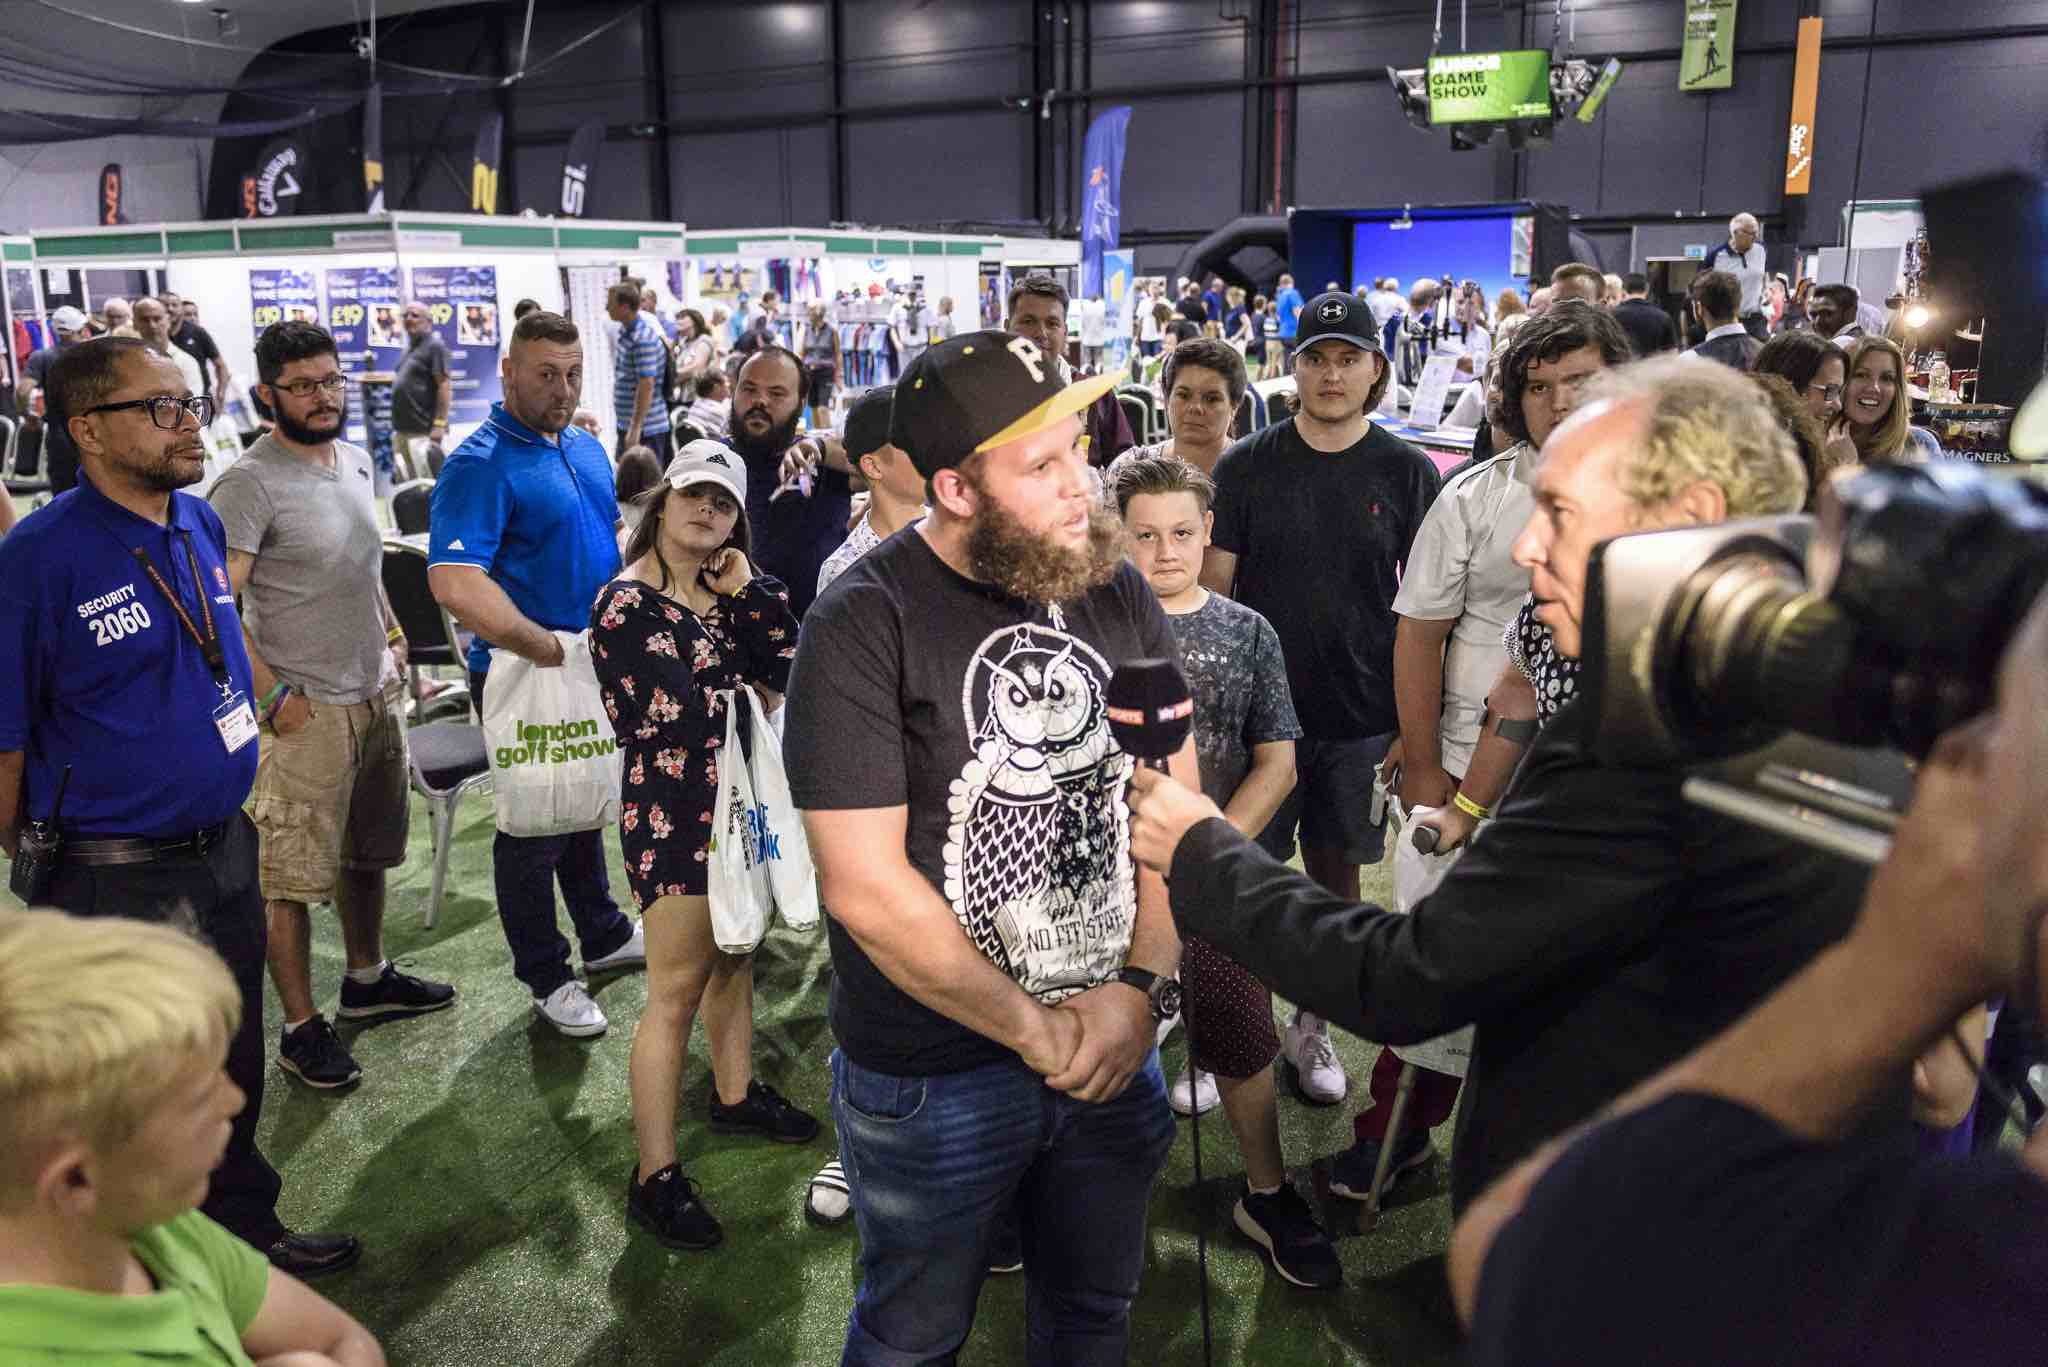 Beef is a massive hit at London Golf Show